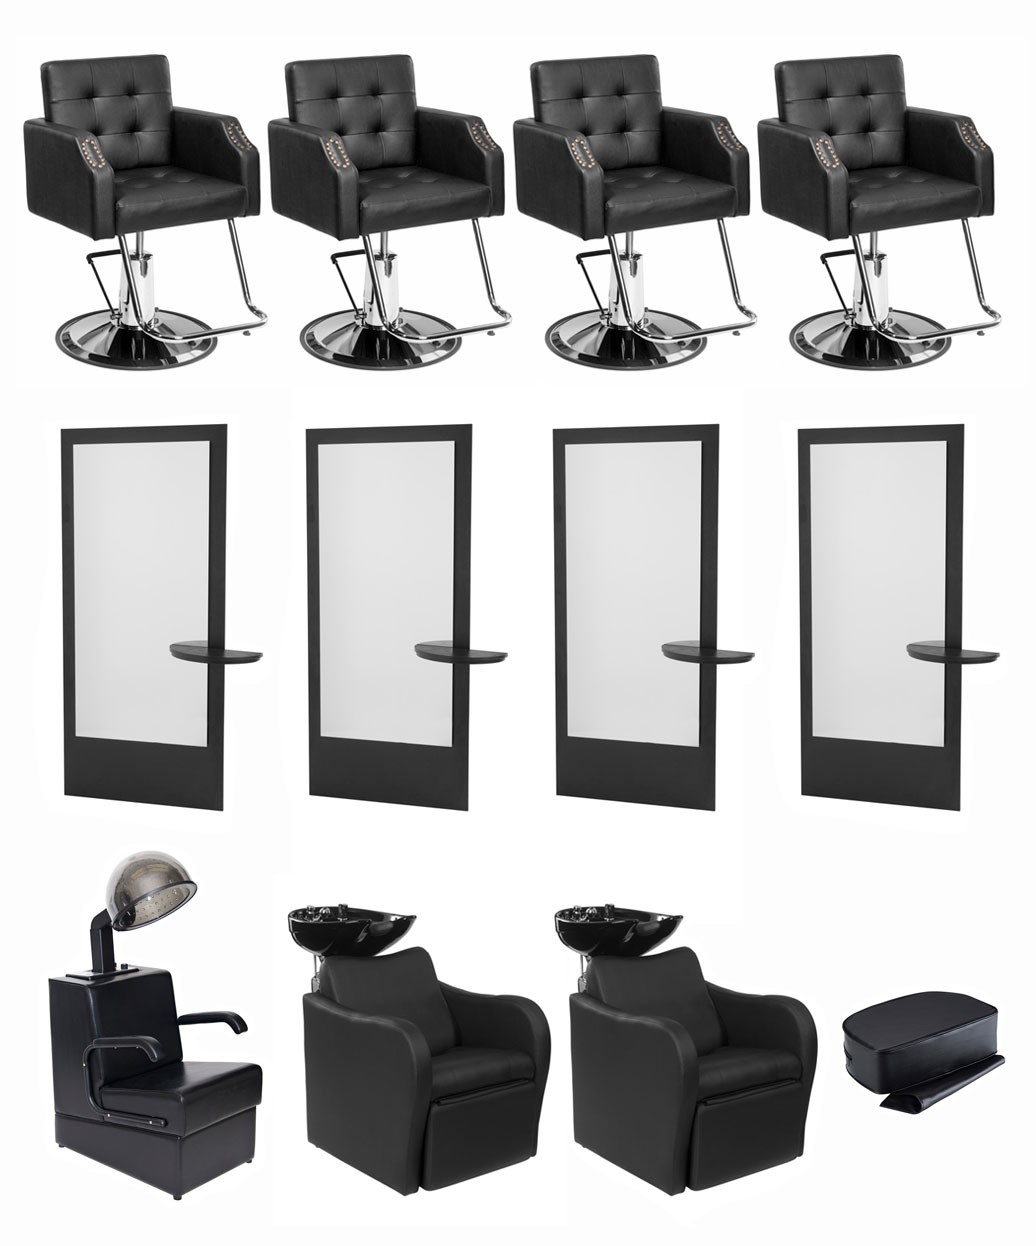 4 Operator Antica & Allegro Salon Package